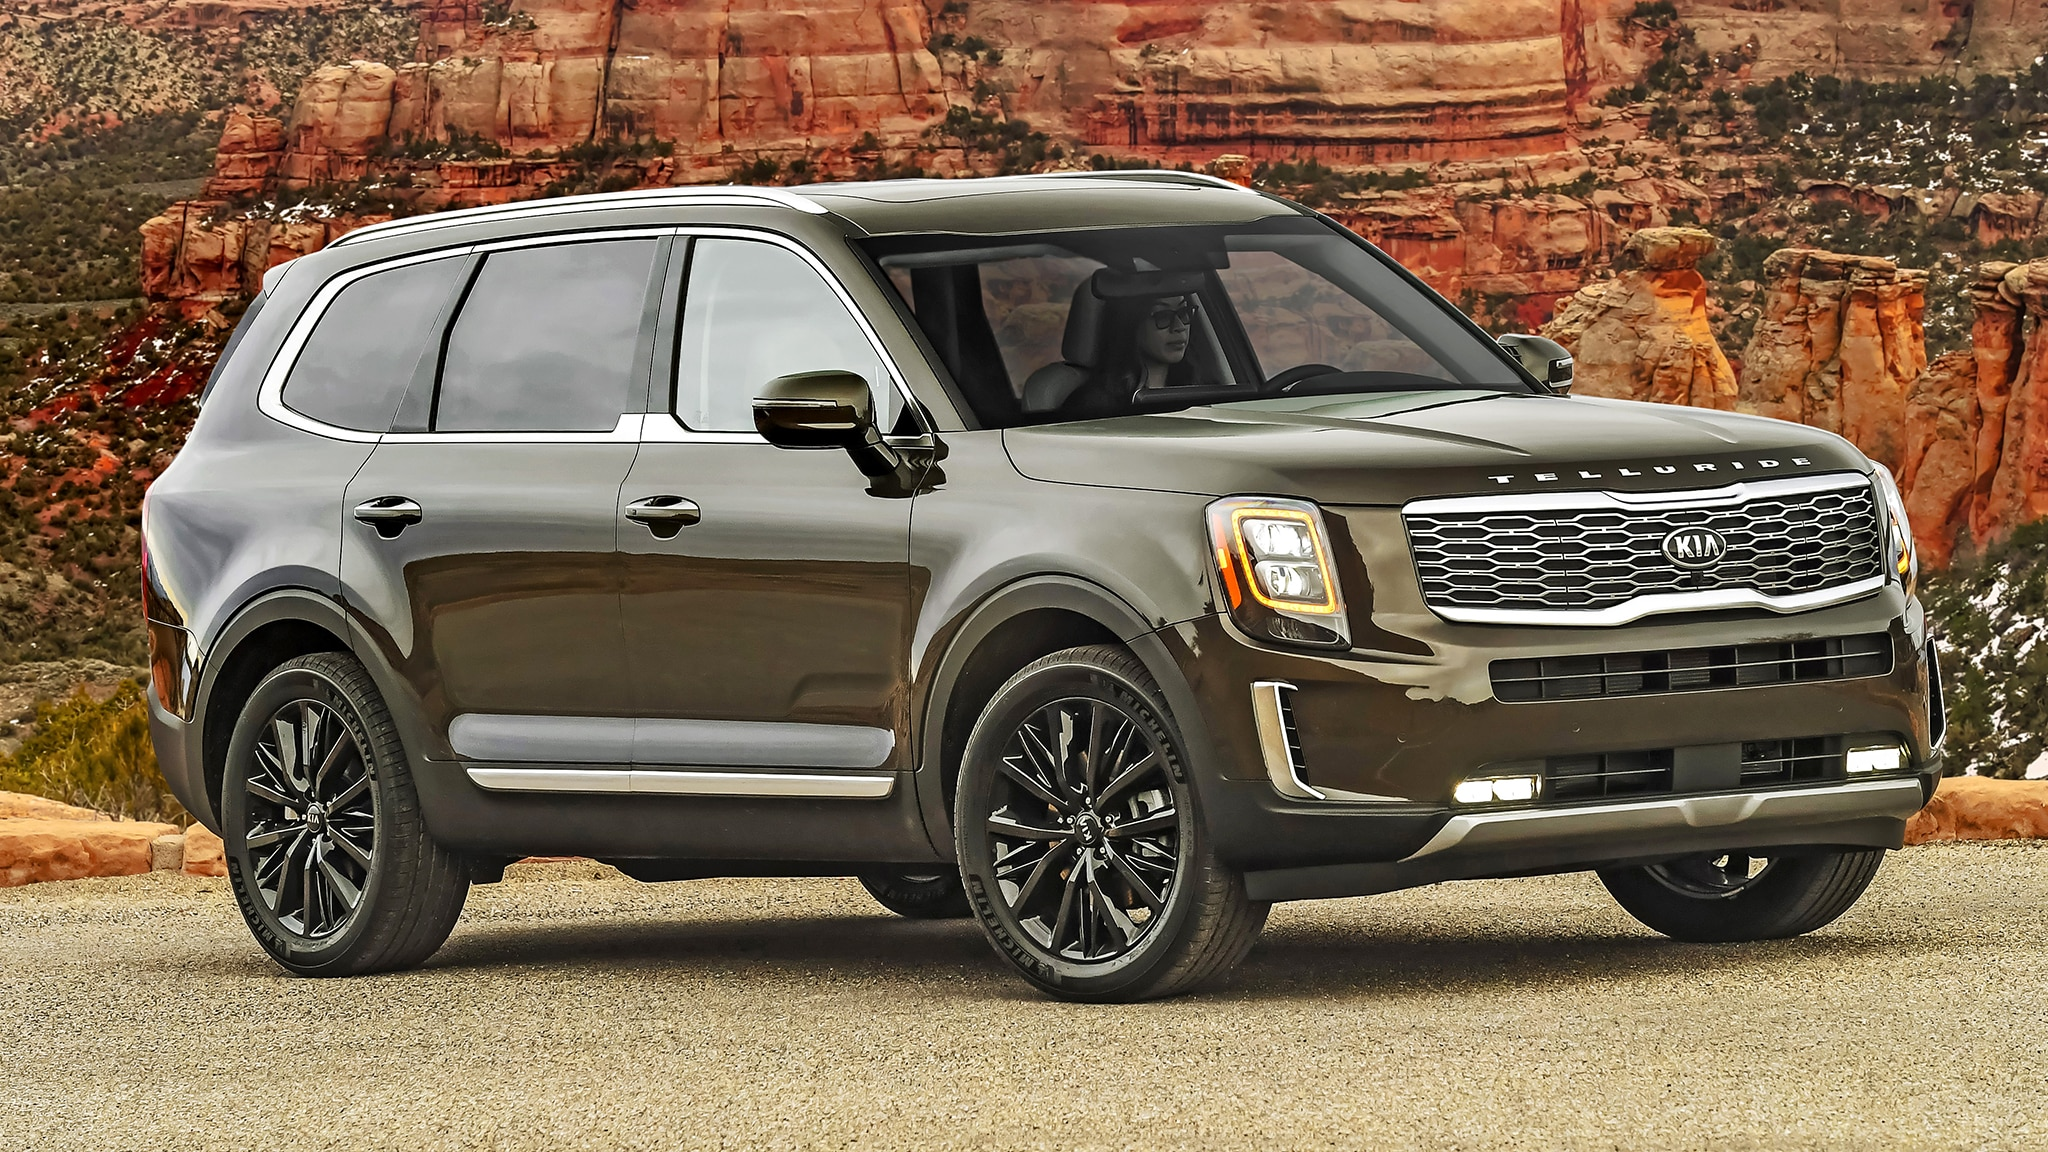 First Drive Review: The 2020 Kia Telluride Is Classy and ...